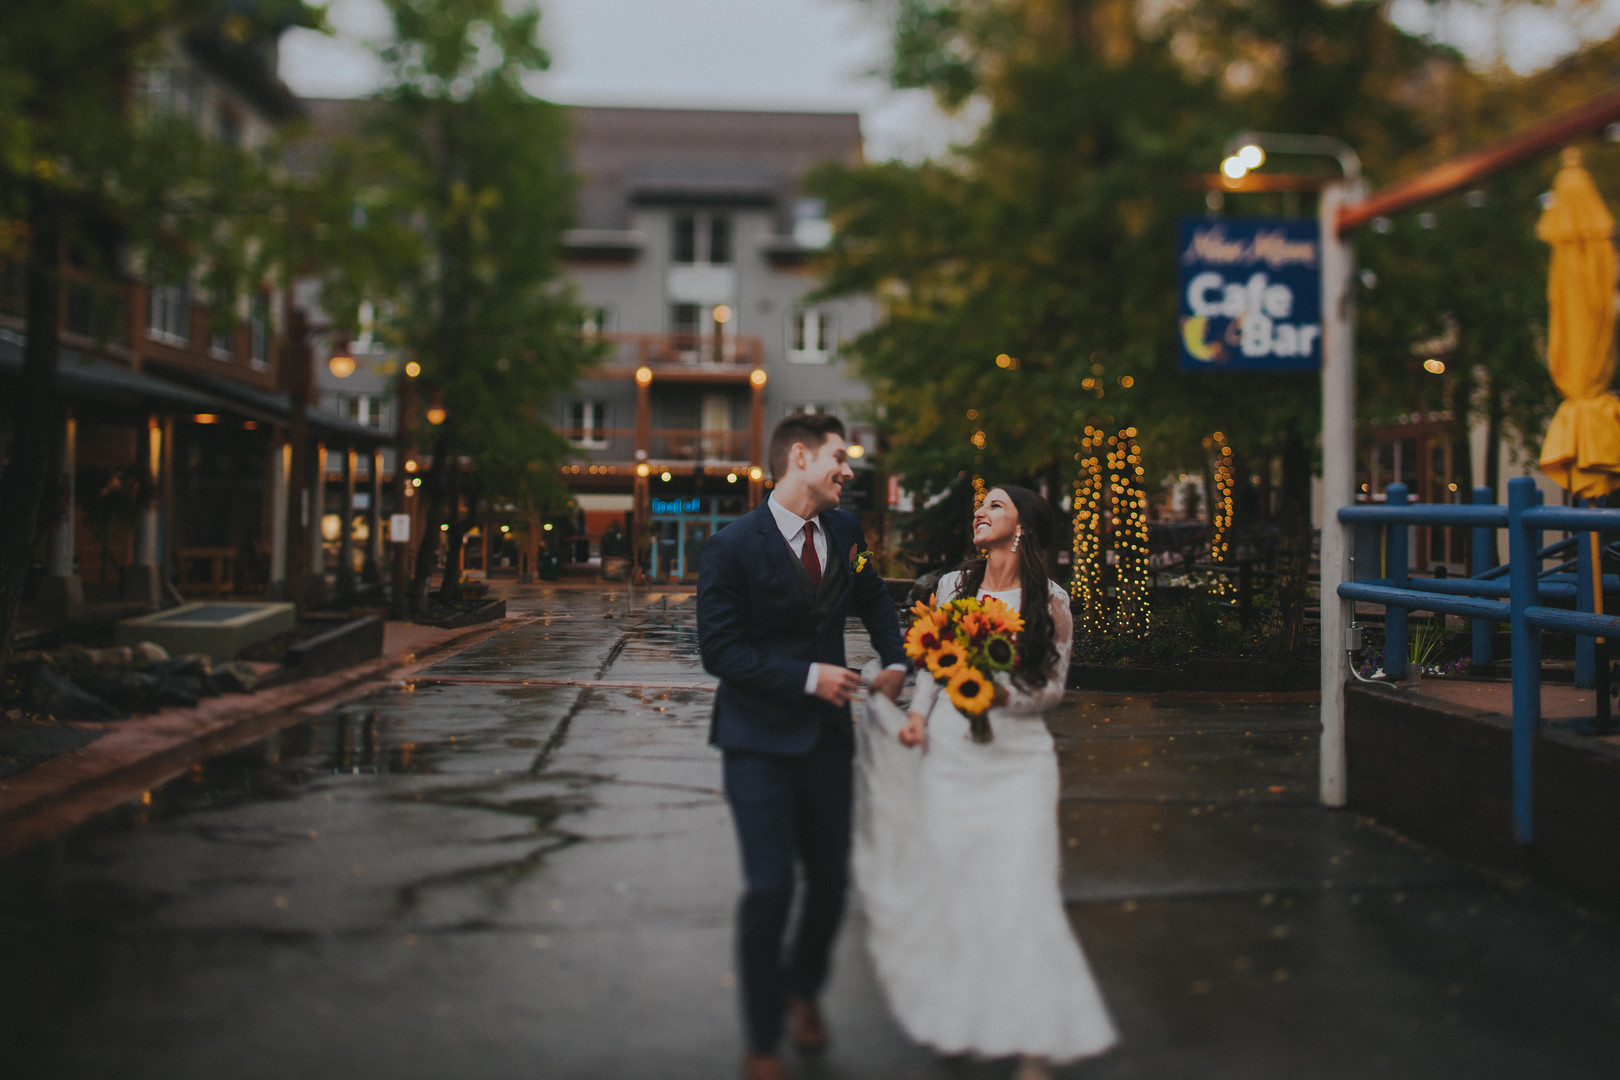 A bride and groom laugh together as they walk together during their Warren Station wedding at the Keystone Resort